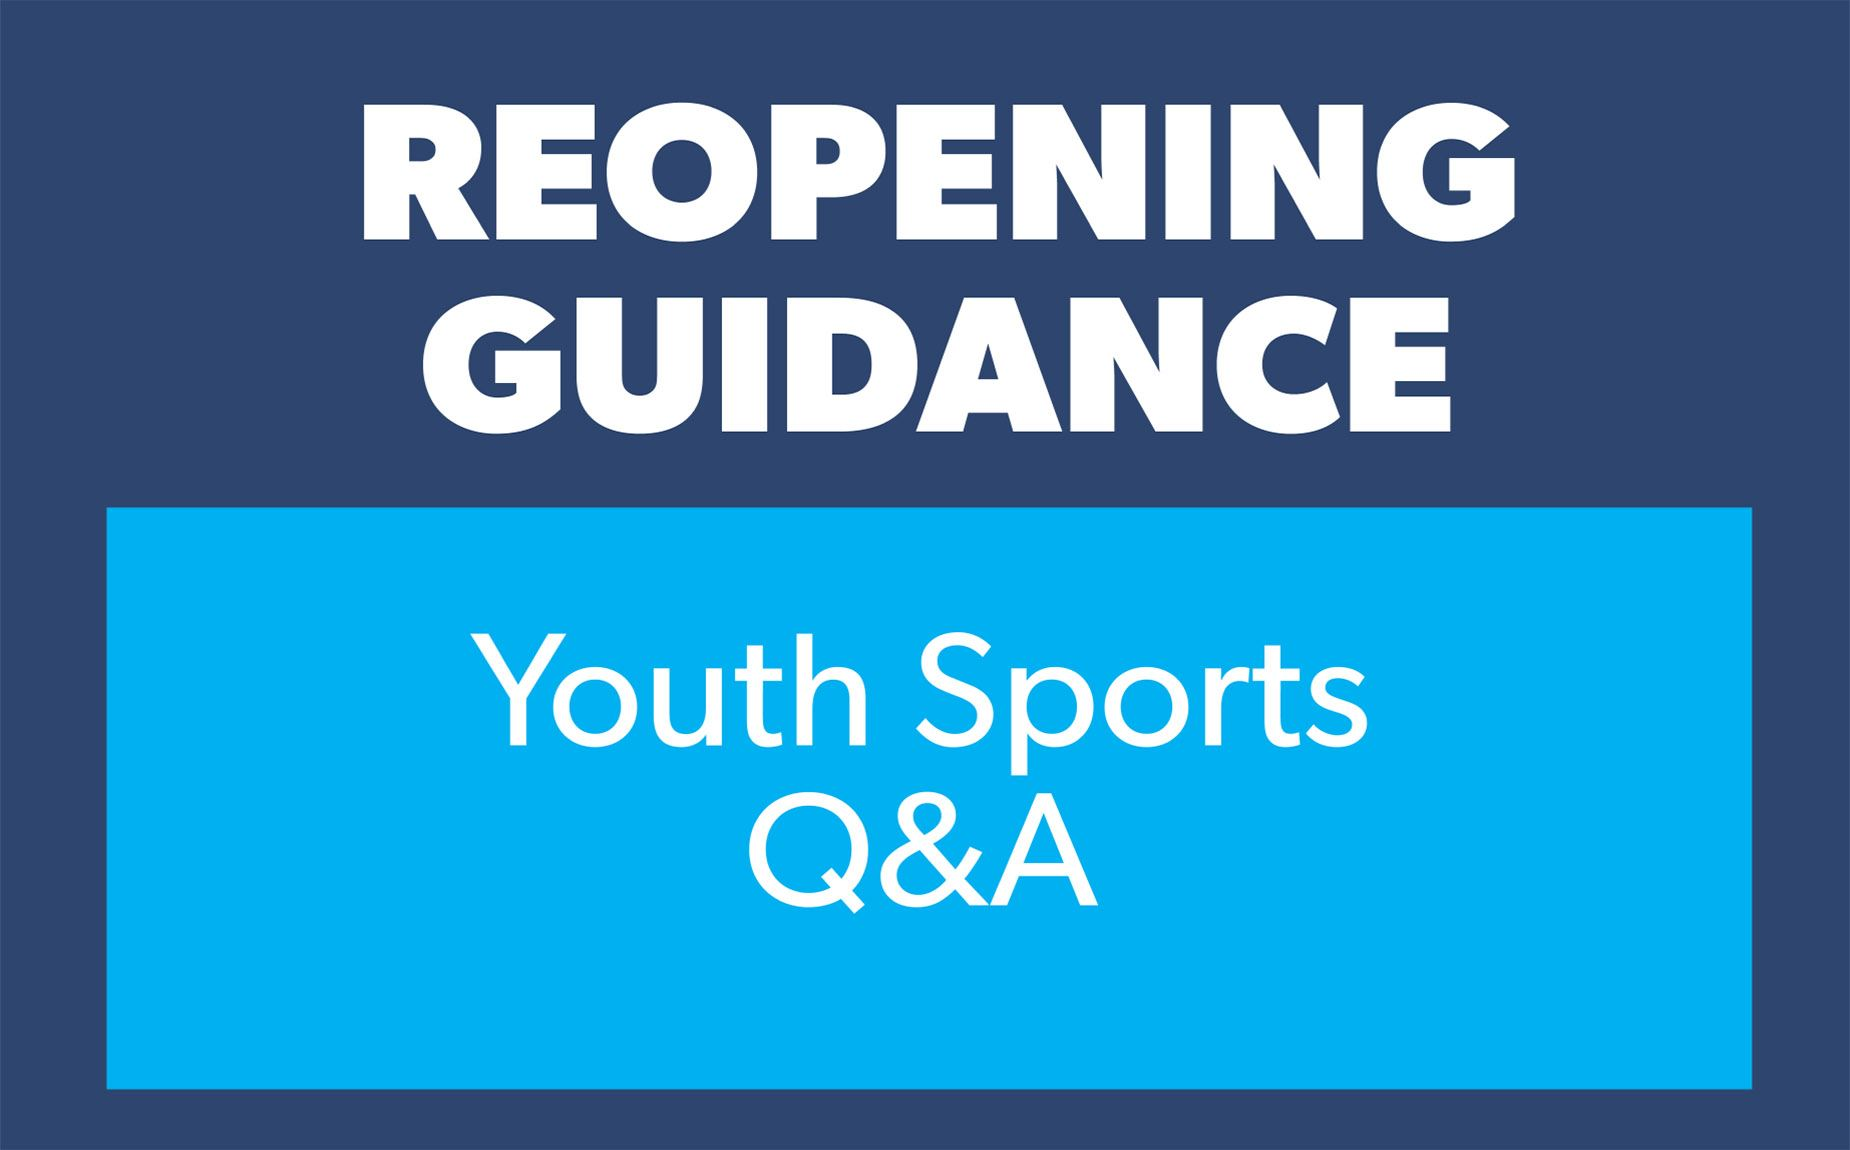 Youth Sports QandA